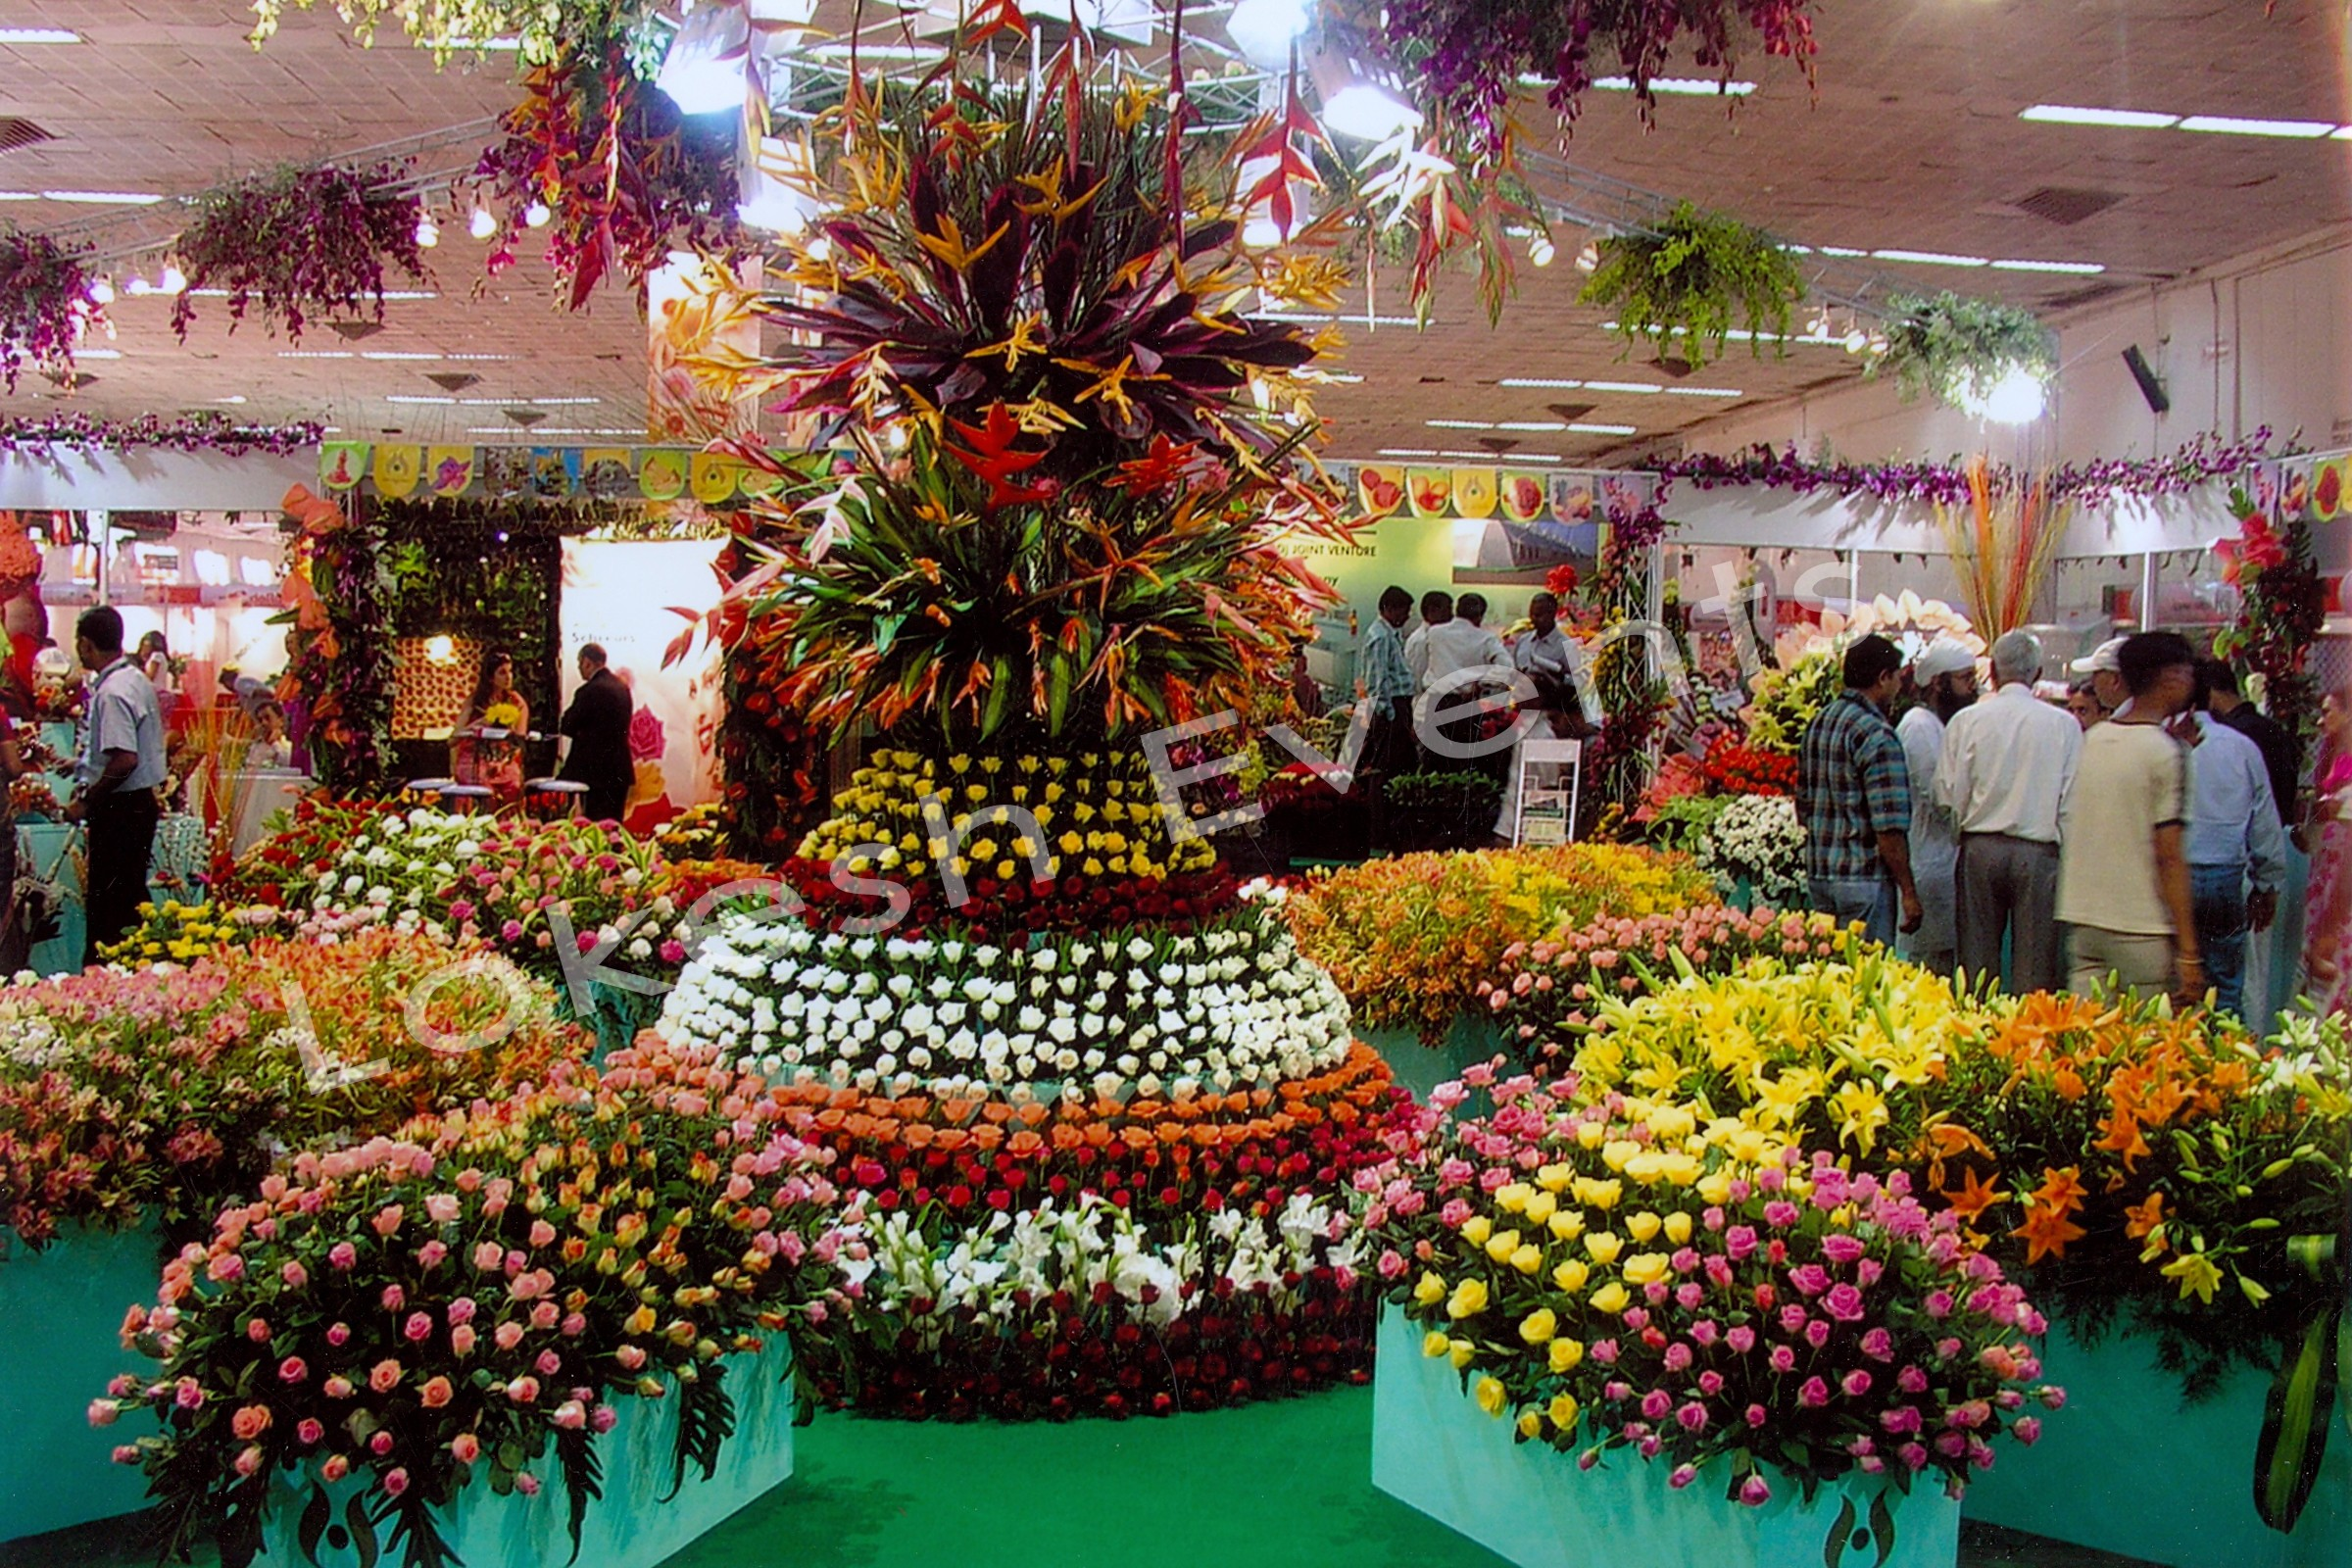 Lokeshflowerdecorationsevents for 7 events flower decorations